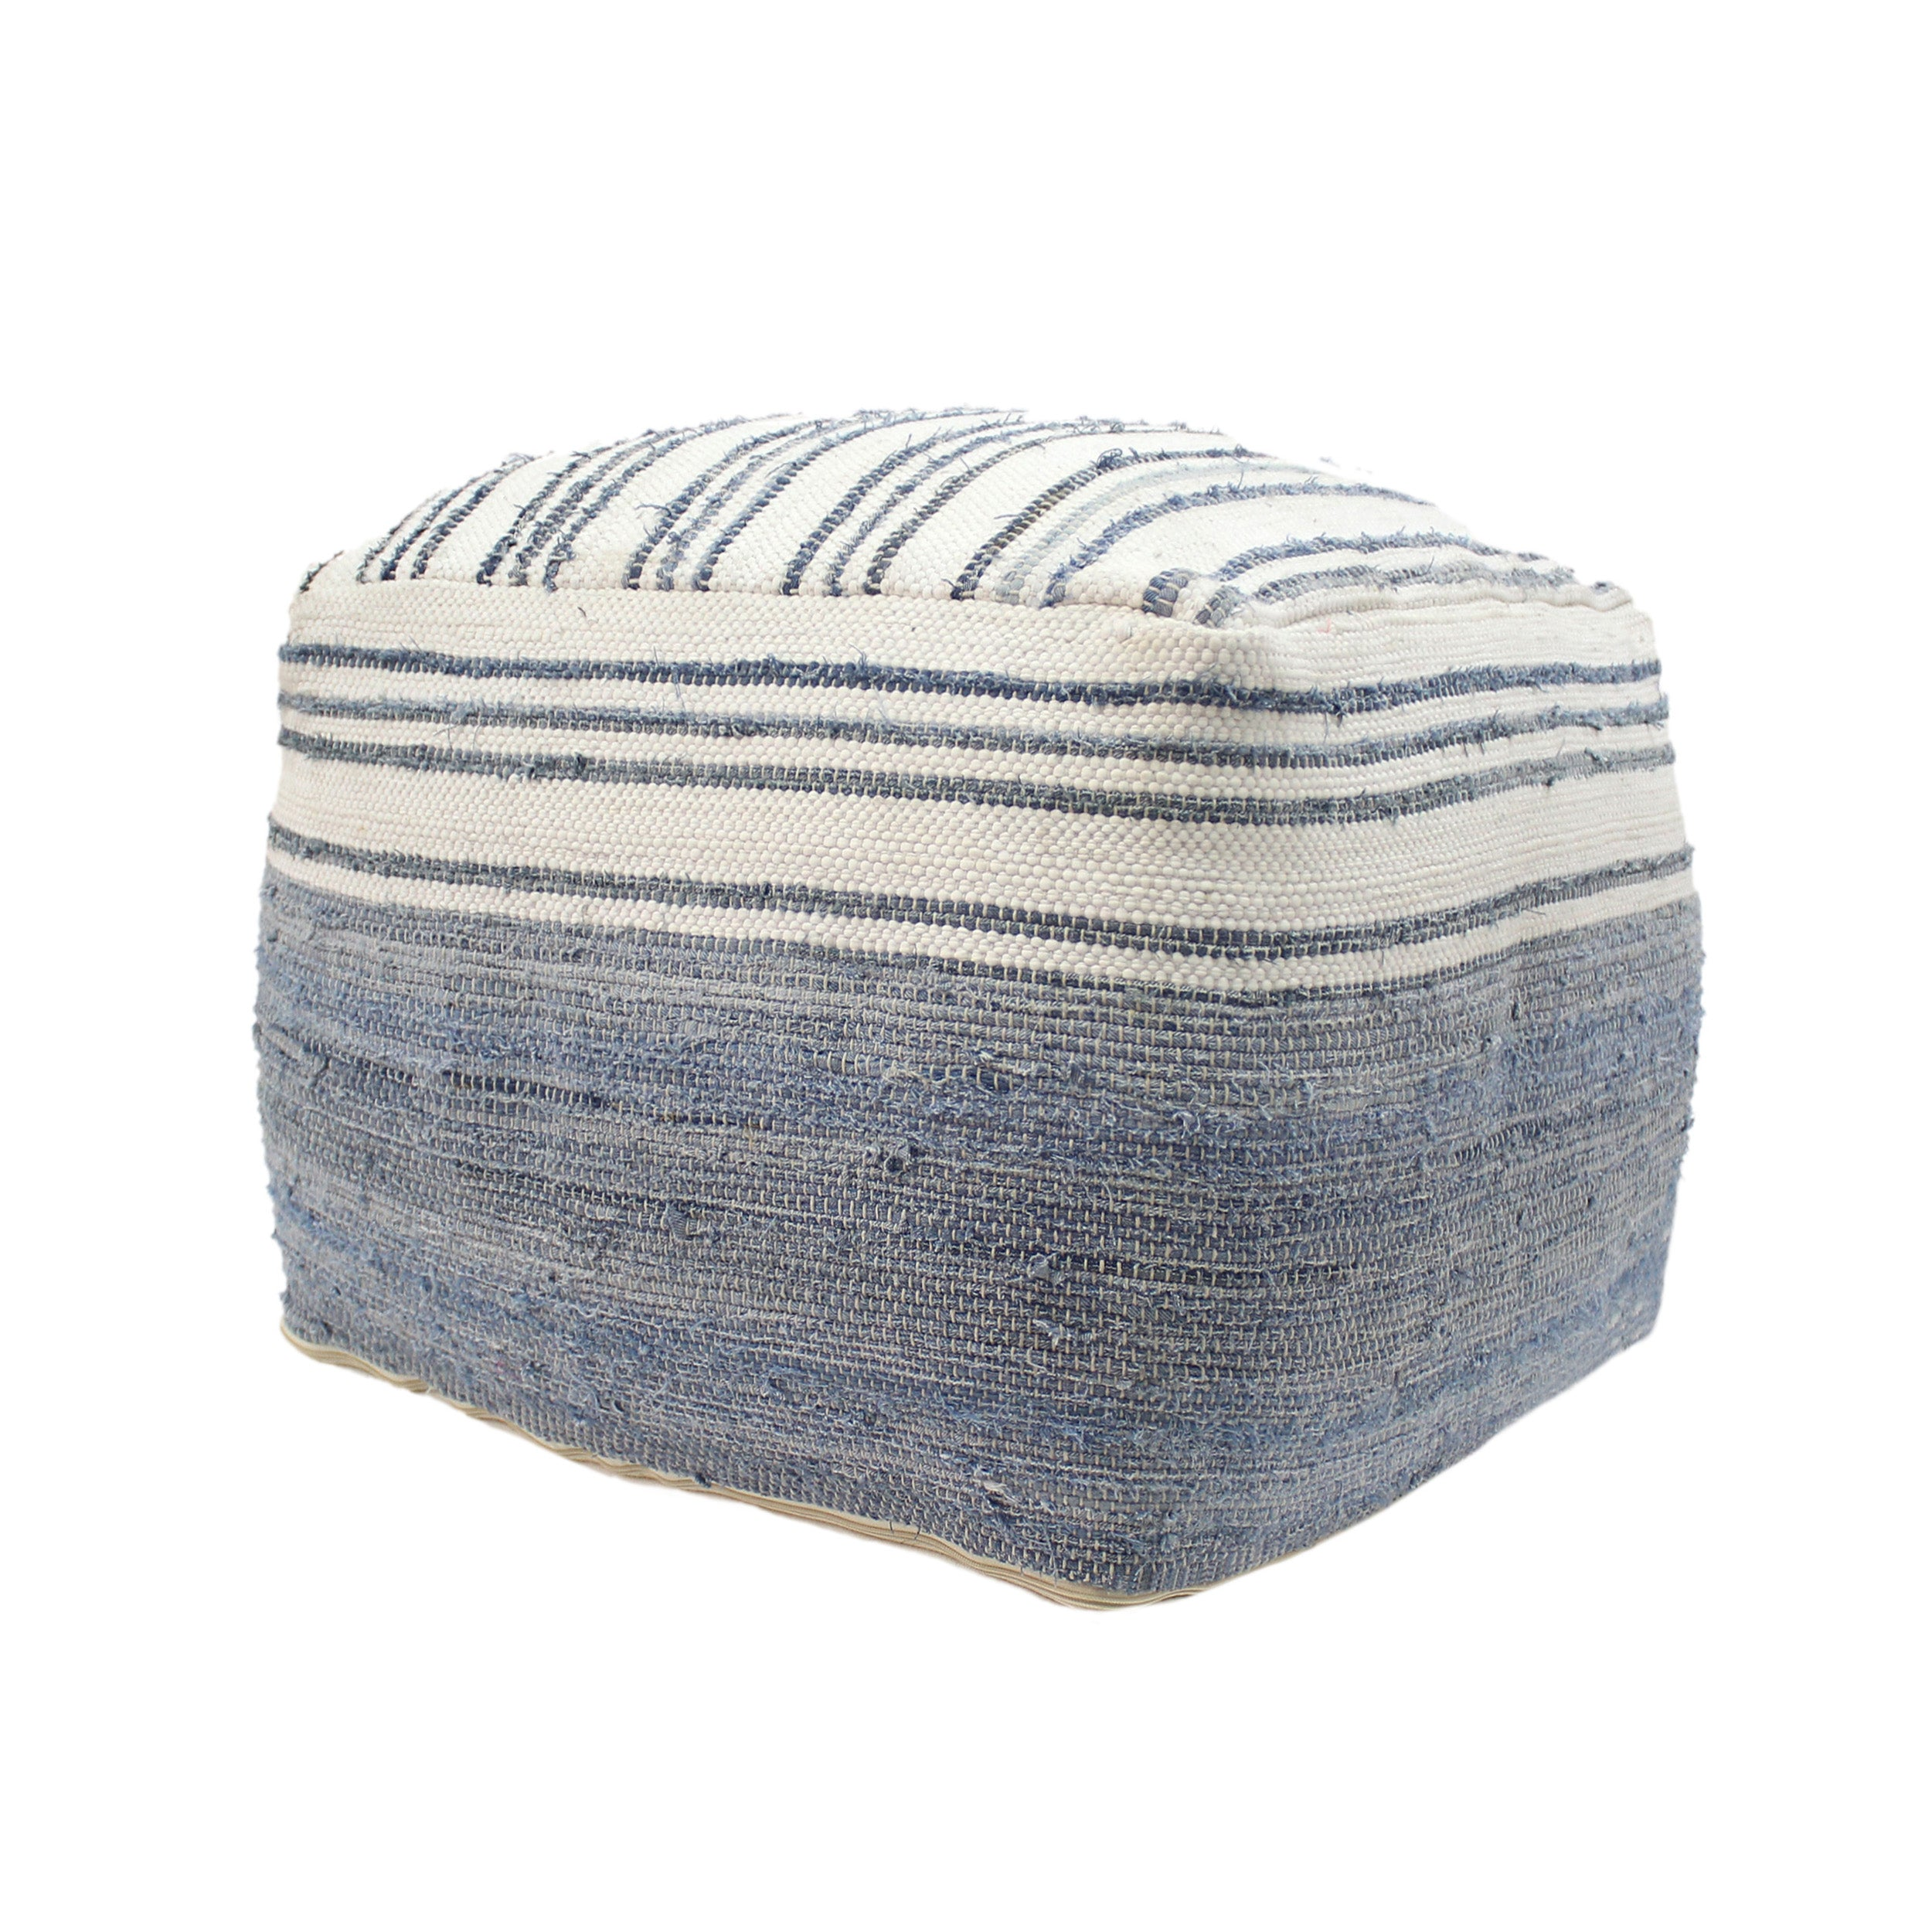 Althea Large Square Casual Pouf Boho Blue and White Recycled Denim and Chindi Default Title